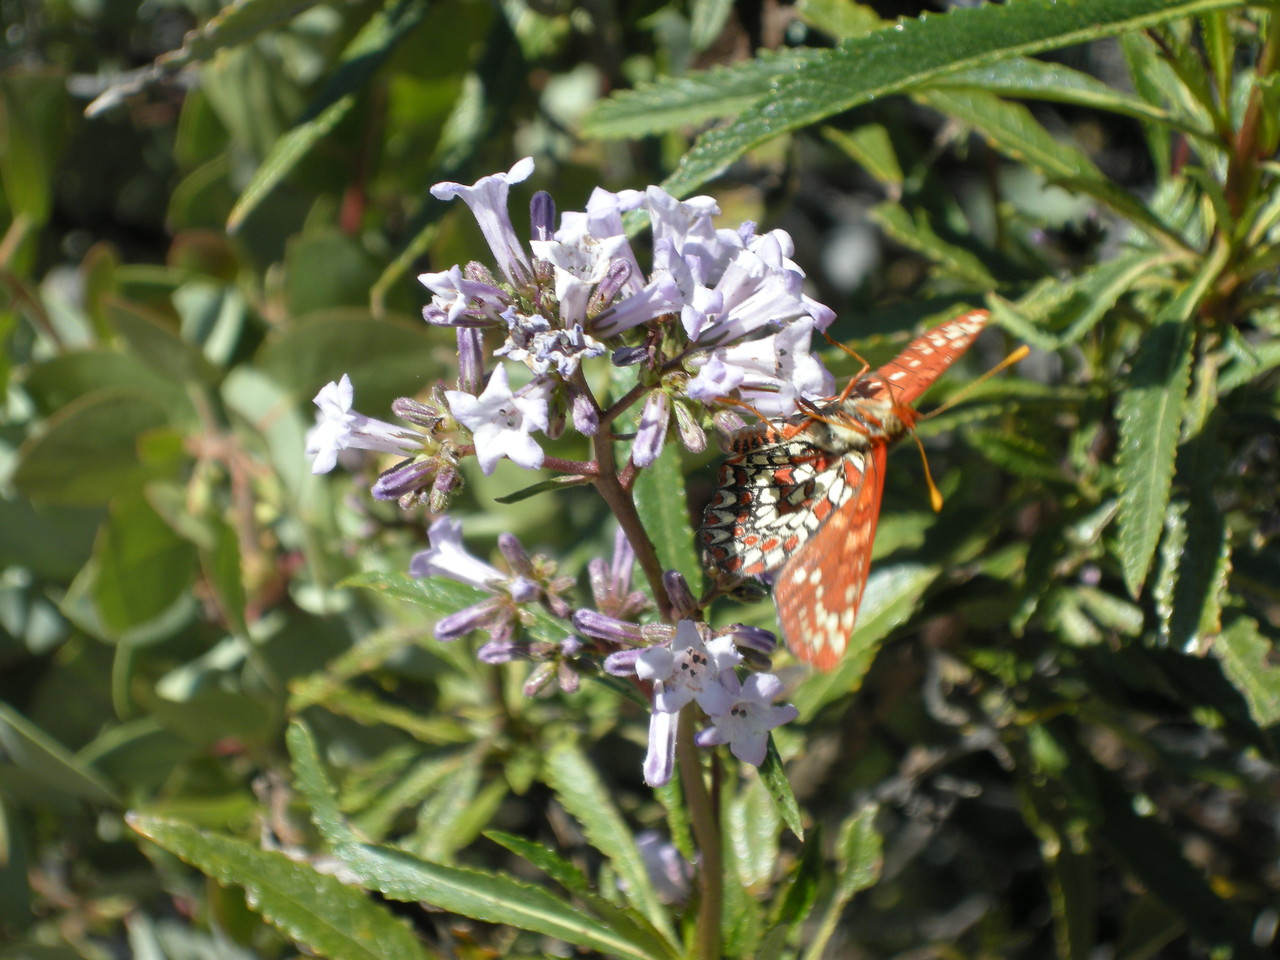 Butterflies and flowers were along the trail.